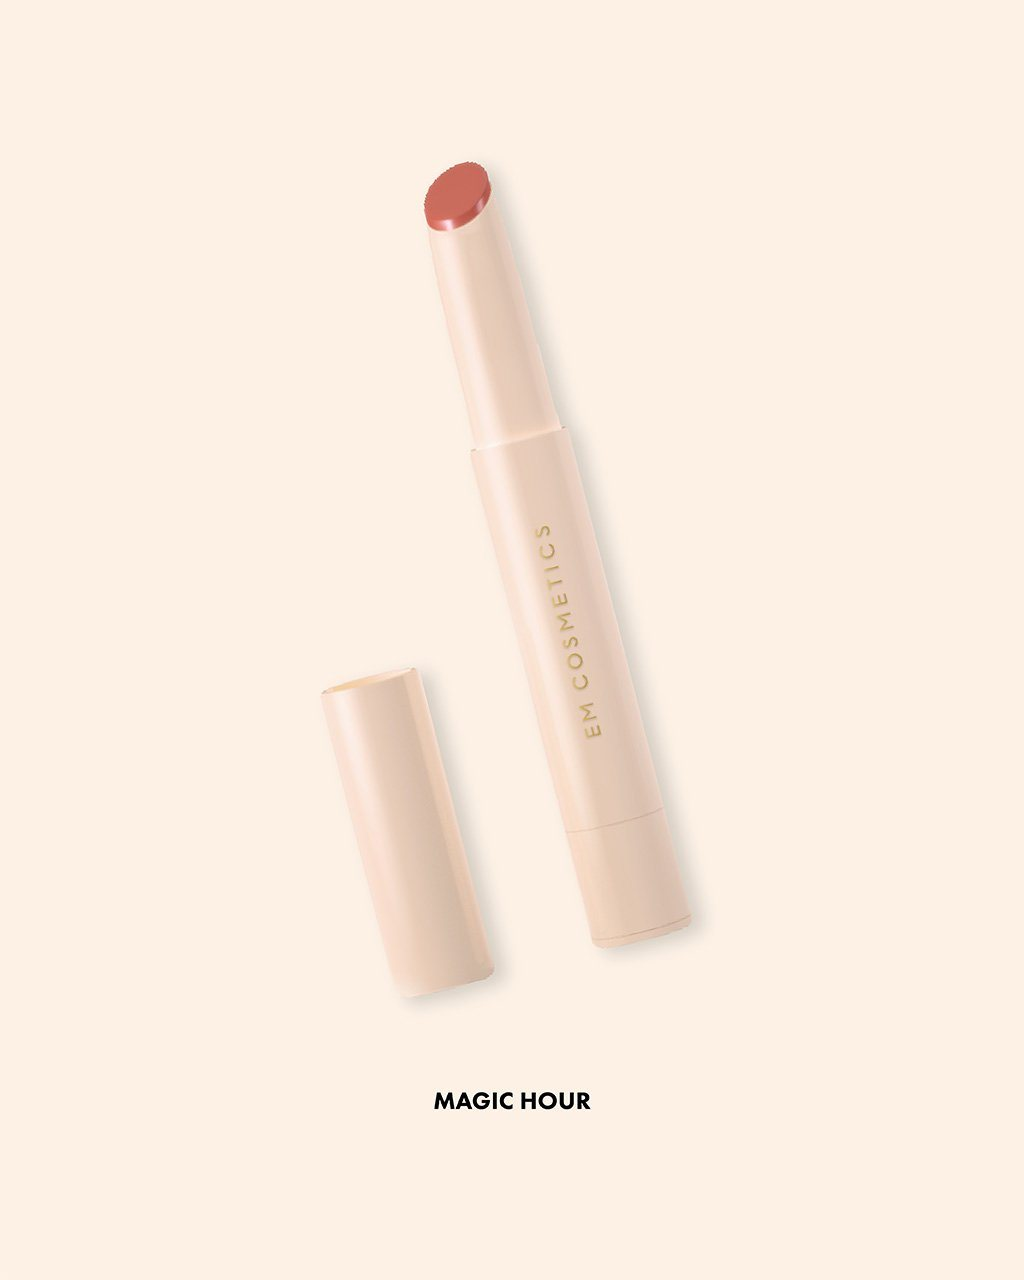 Lip Cushion Tinted Lip Luminizer in Magic Hour